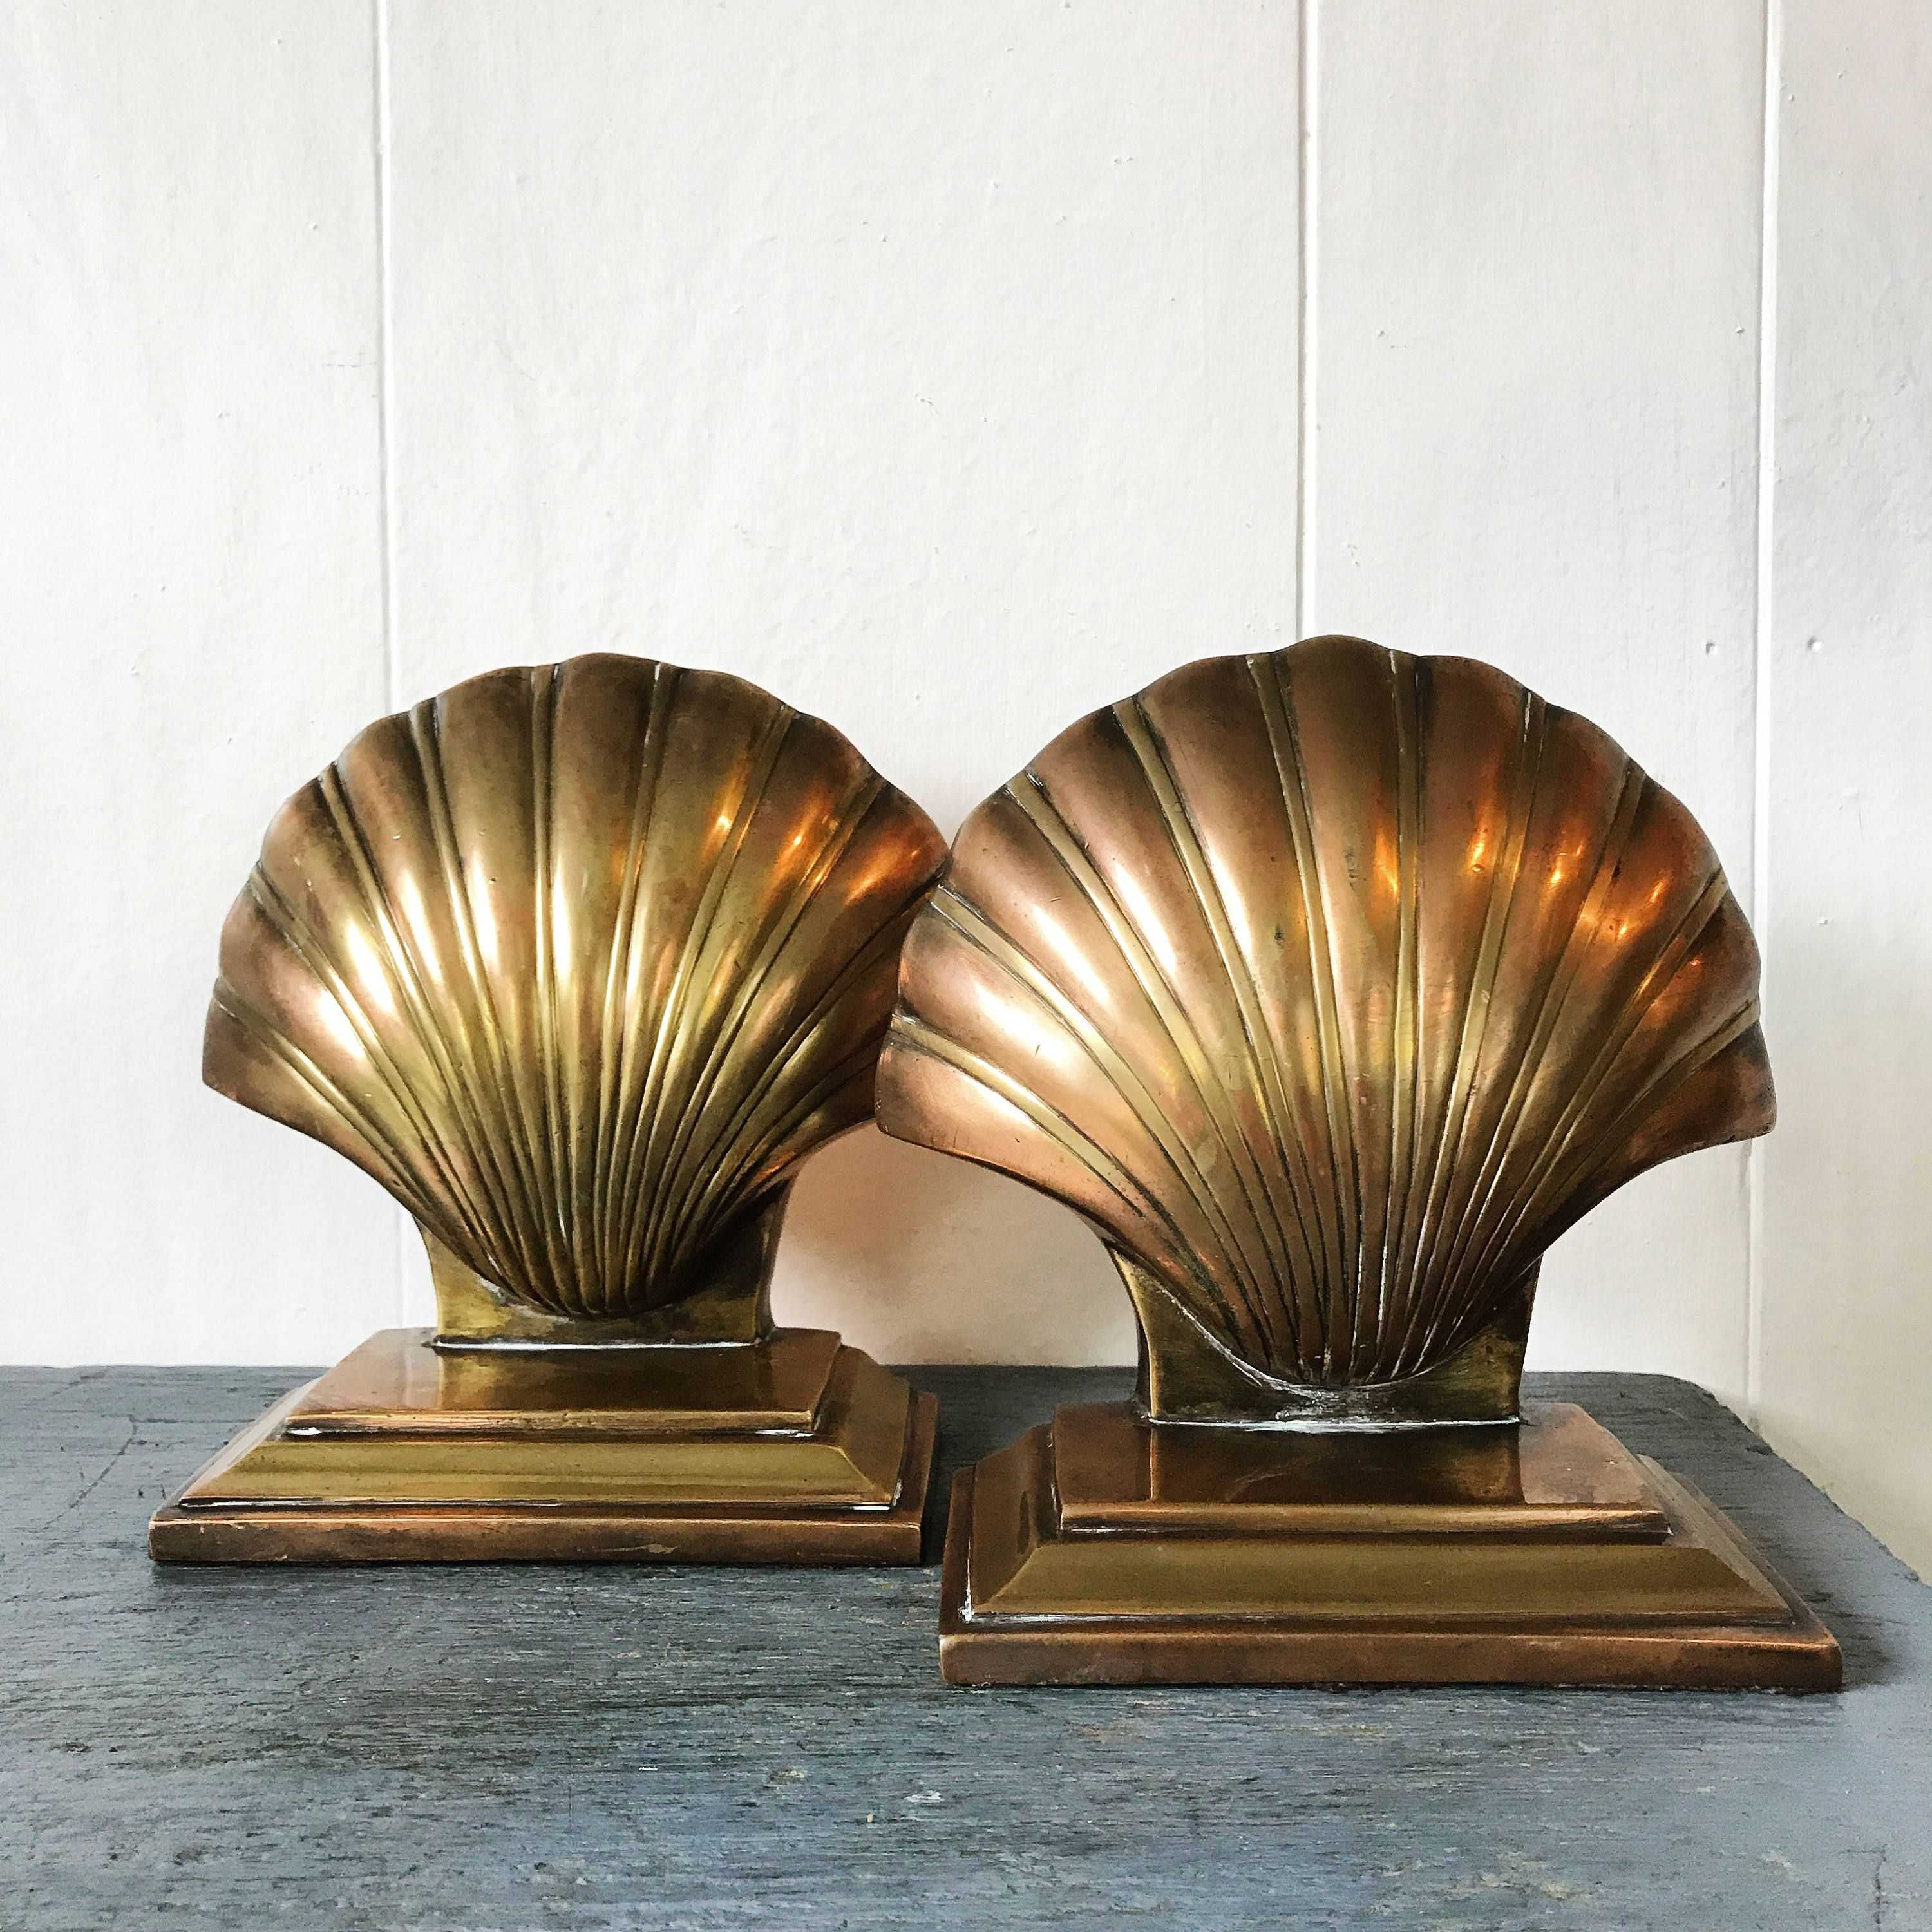 Vintage Brass Bookends   Scallop Sea Shell   Metal Copper Desk Office    Nautical Beach Decor